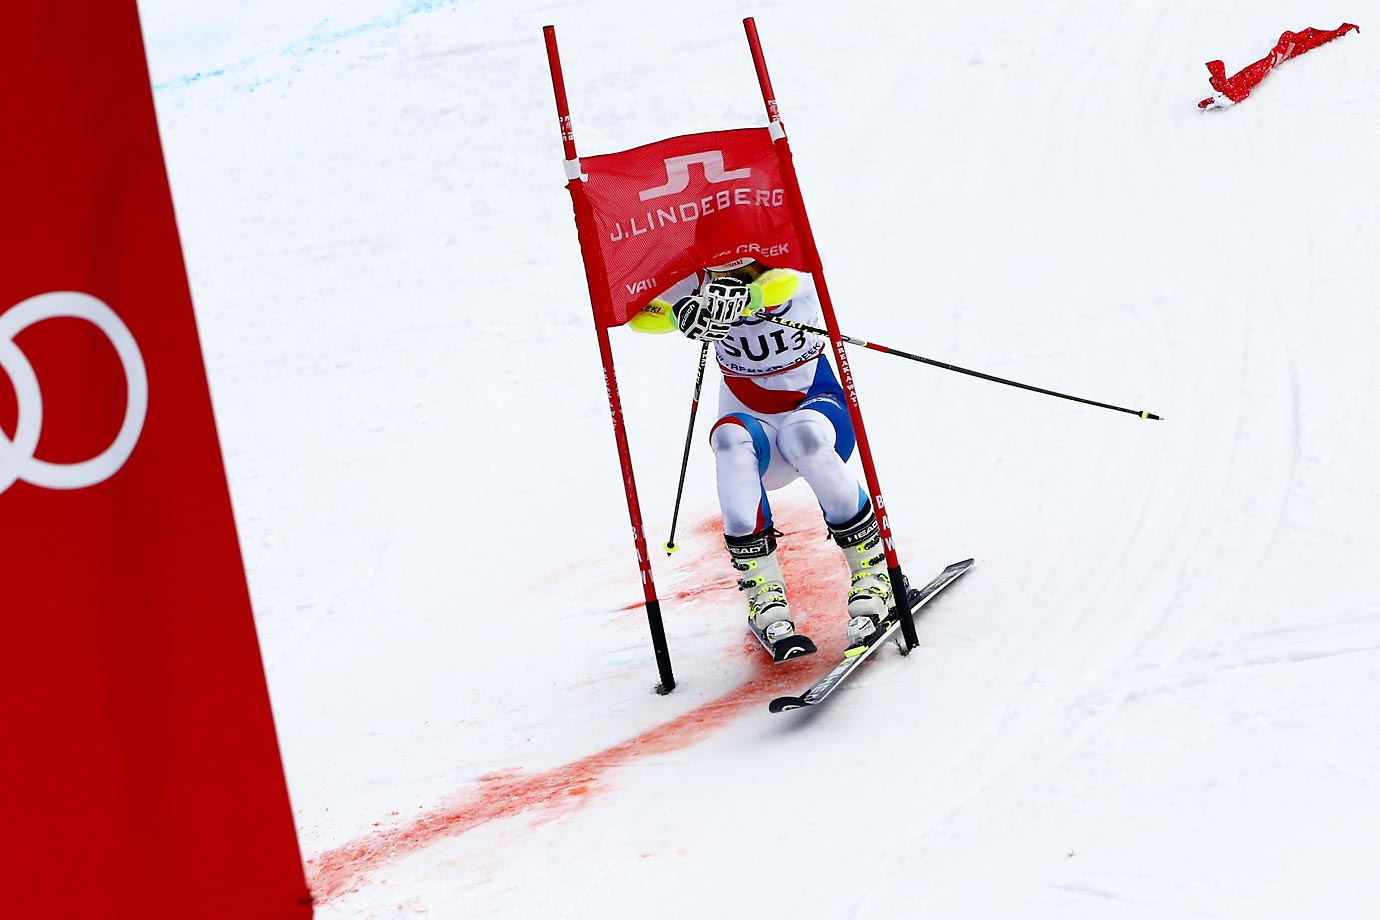 Wendy Holdener of Switzerland decides to take a shortcut during the FIS Alpine World Ski Championships.